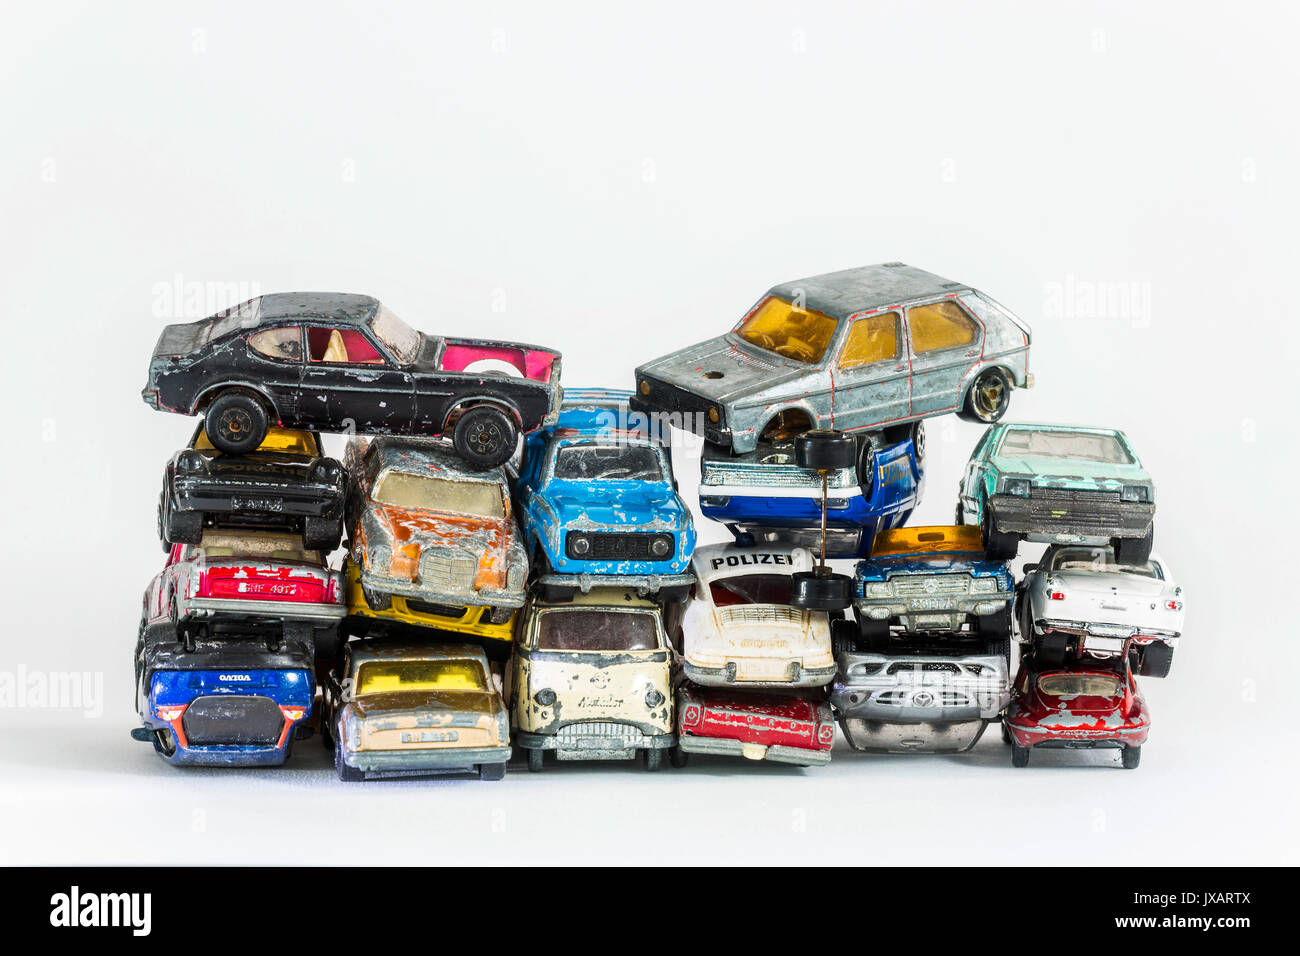 : Model car. A stack of broken toy cars. - Stock Image